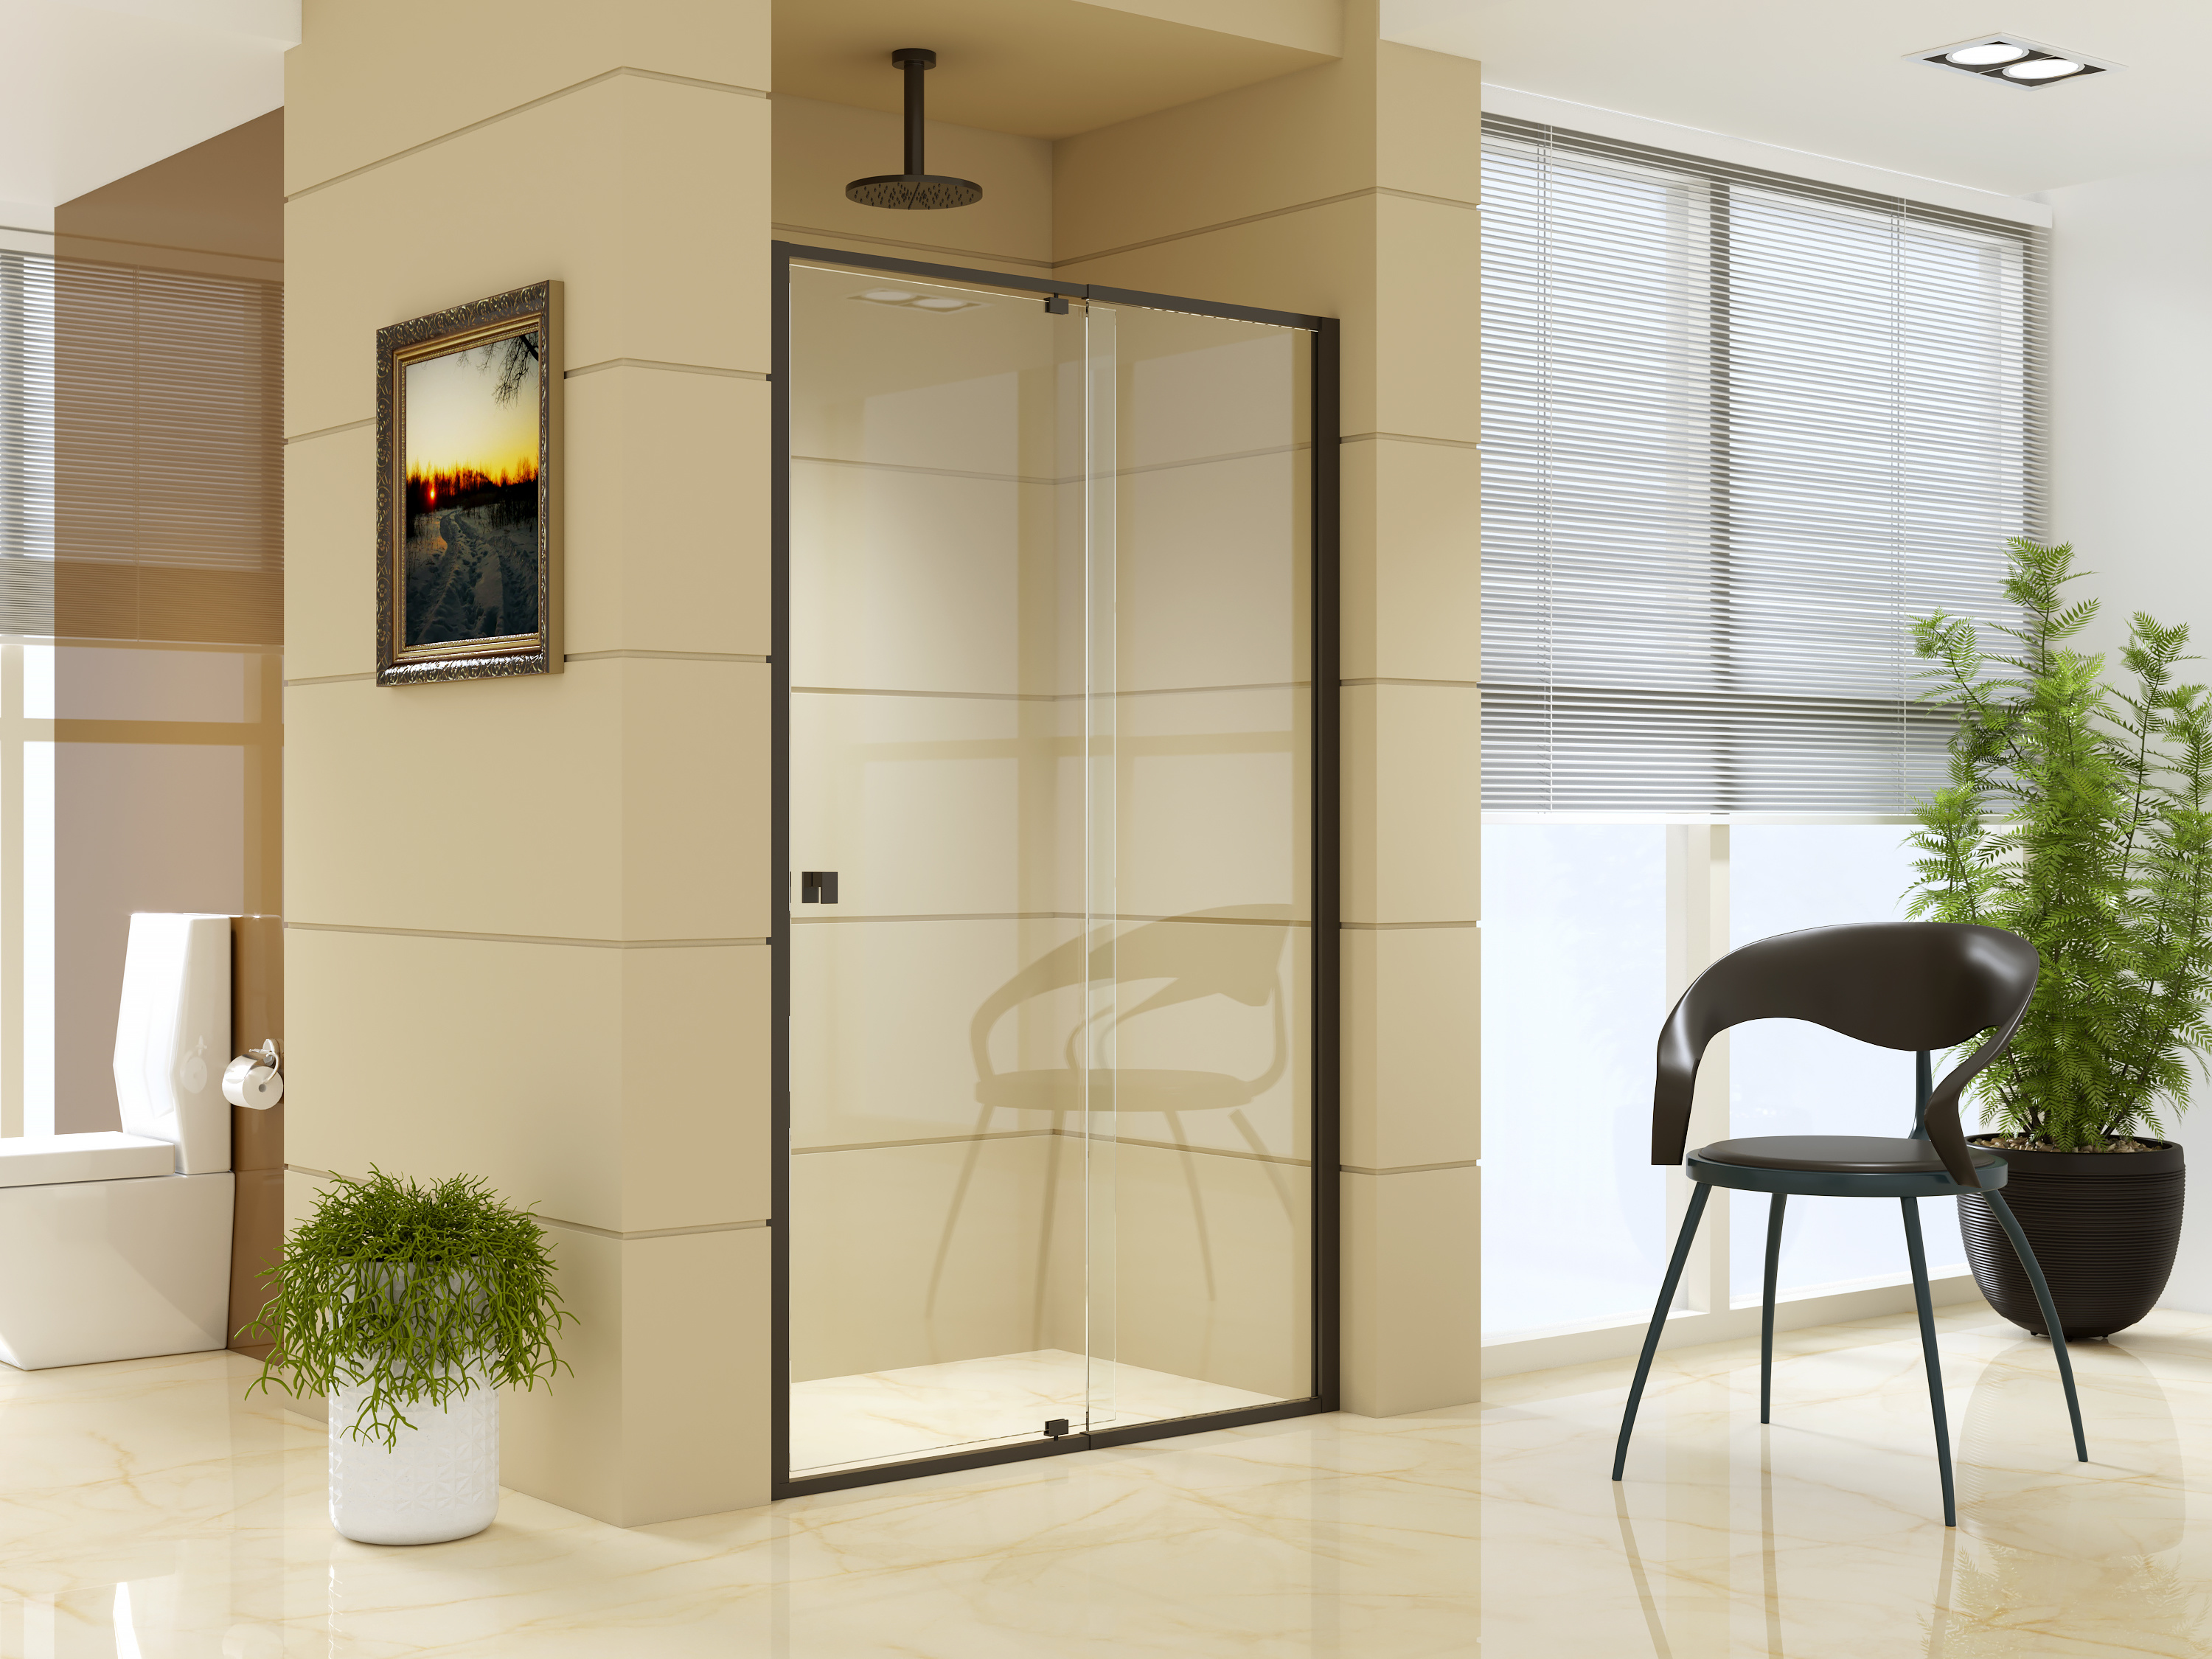 Adjustable Semi Frameless Shower Screen (114~122) x 195cm Australian Safety Glass